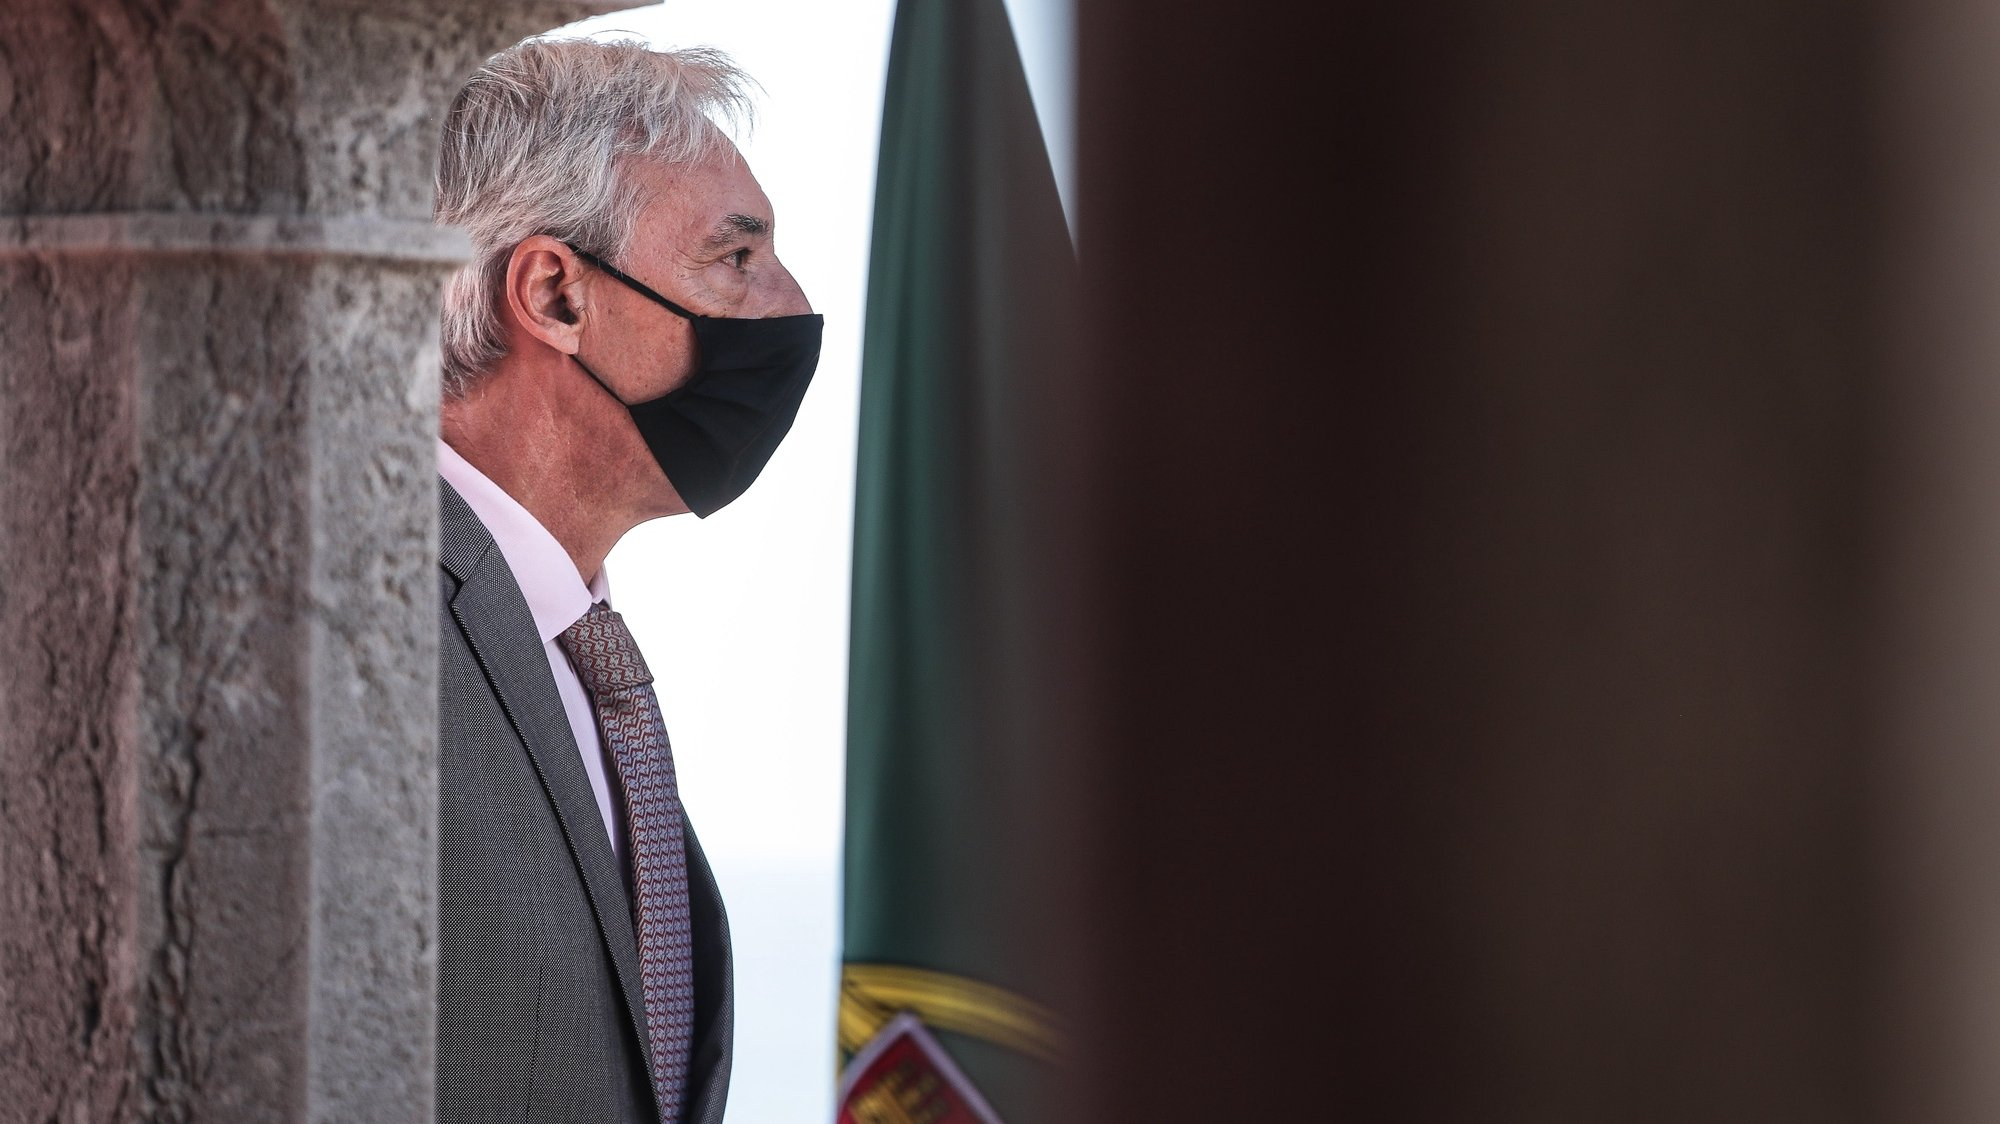 Portugal's Defense Minister Joao Gomes Cravinho talks to the press after a meeting with Greece's Defense Minister Nikolaos Panagiotopoulos (not pictured) at Sao Juliao da Barra Fort, in Oeiras, Portugal, 12 October 2020.MÁRIO CRUZ/LUSA